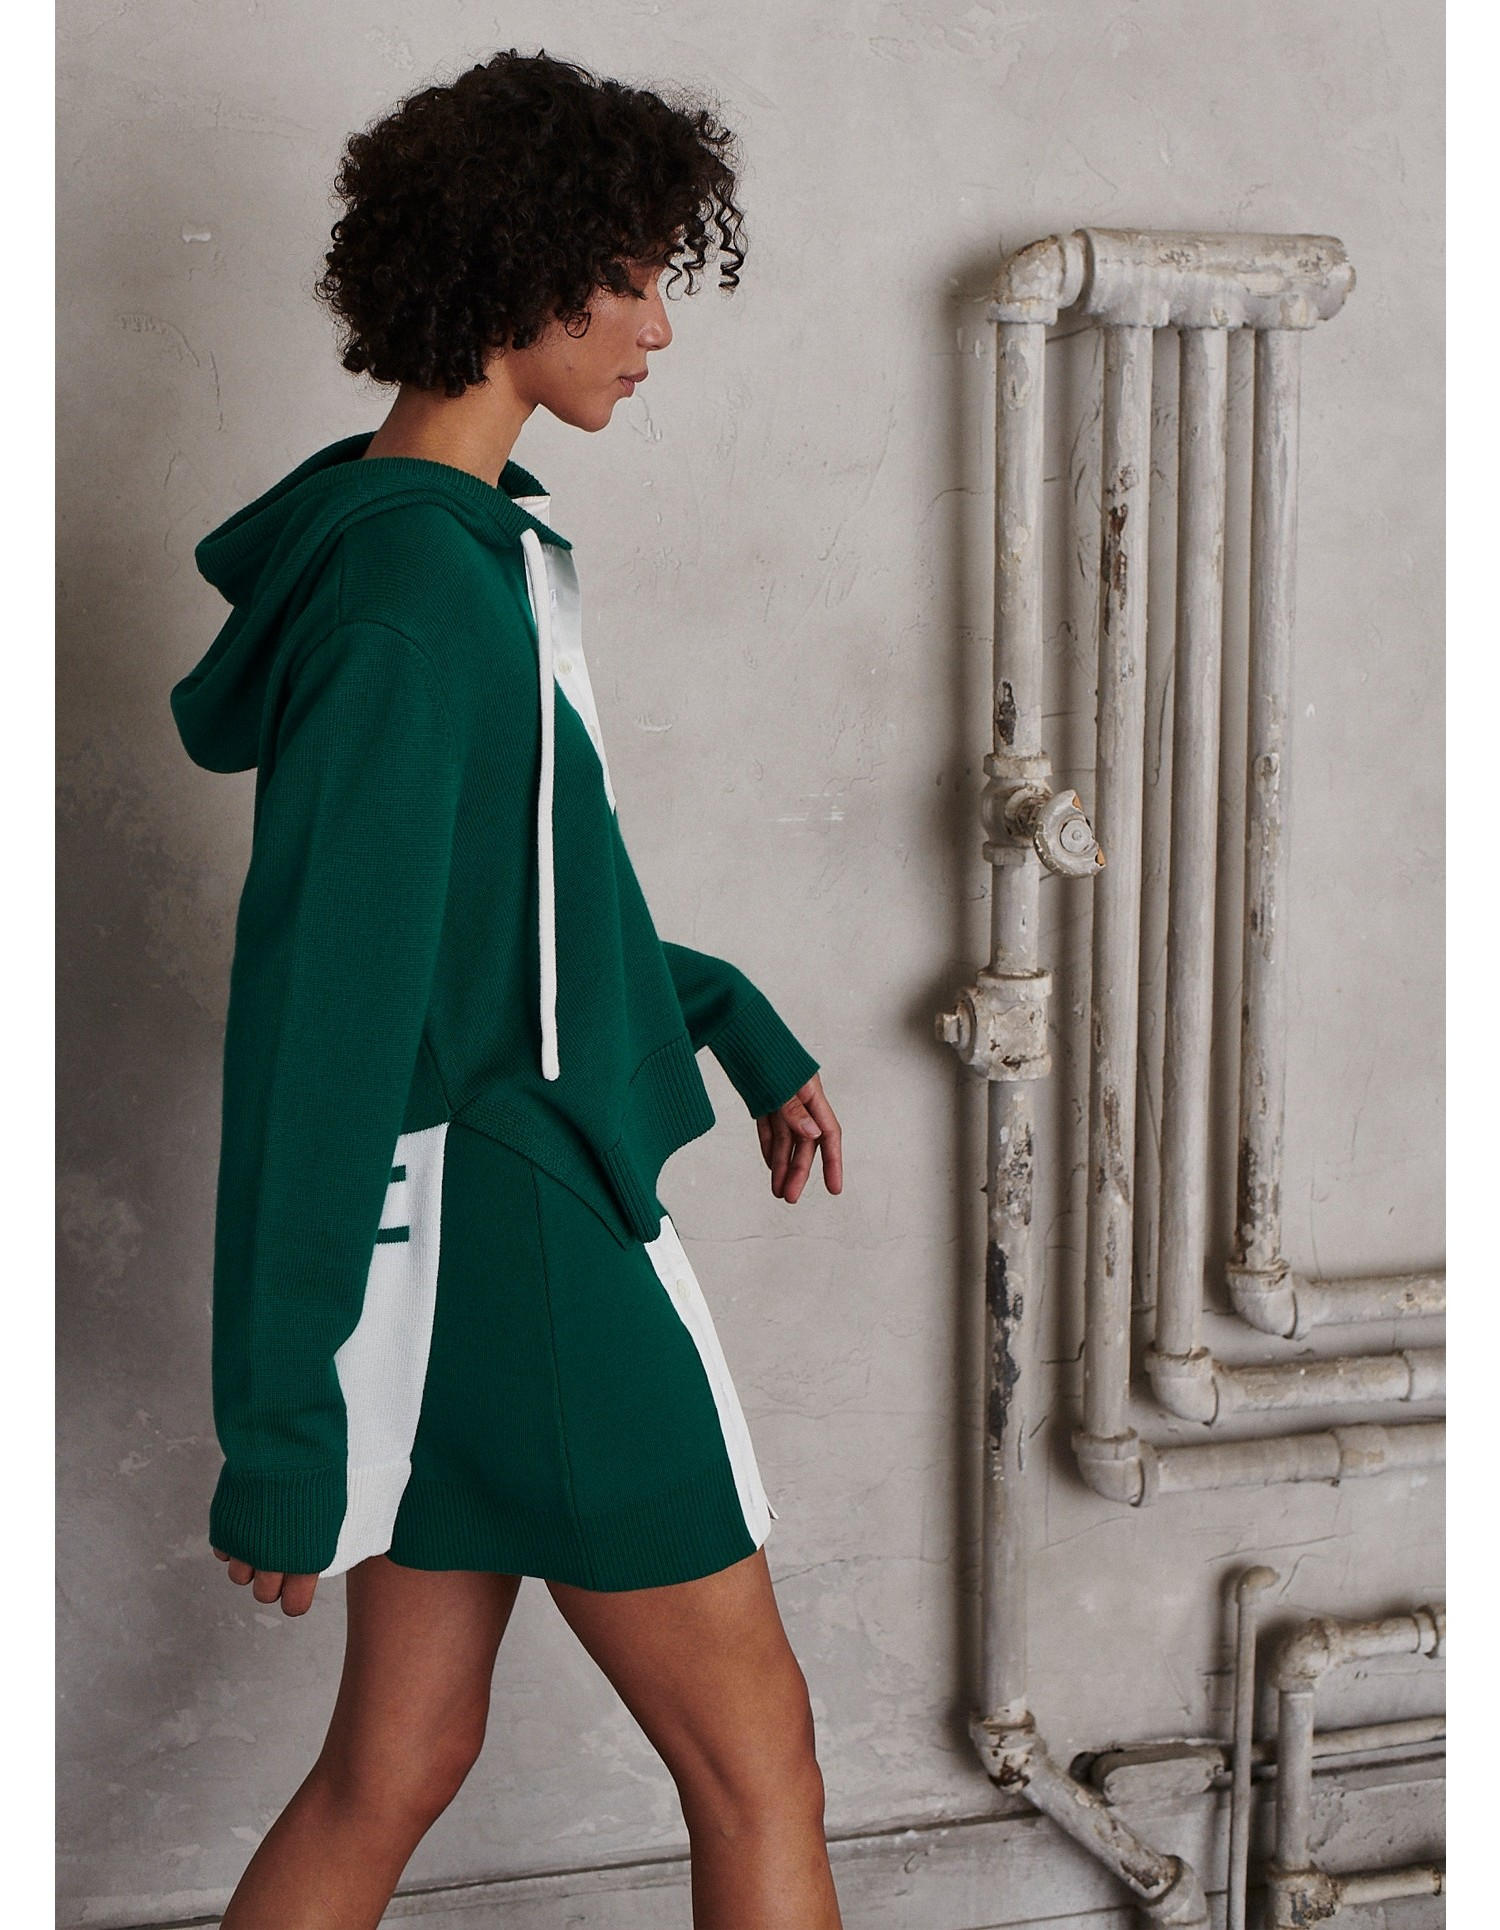 MONSE Rugby Knit Mini Skirt in Grass and Ivory on Model Side View